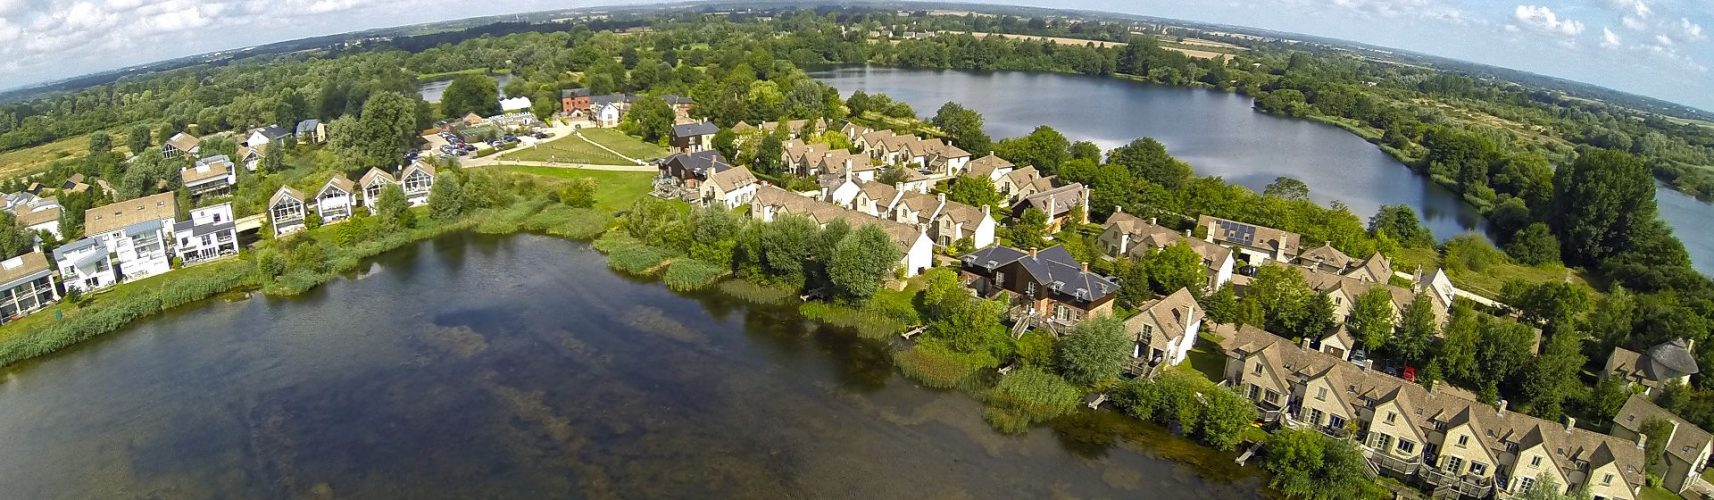 Places to Walk in the Cotswolds - Find Out Orion Holidays Top 10